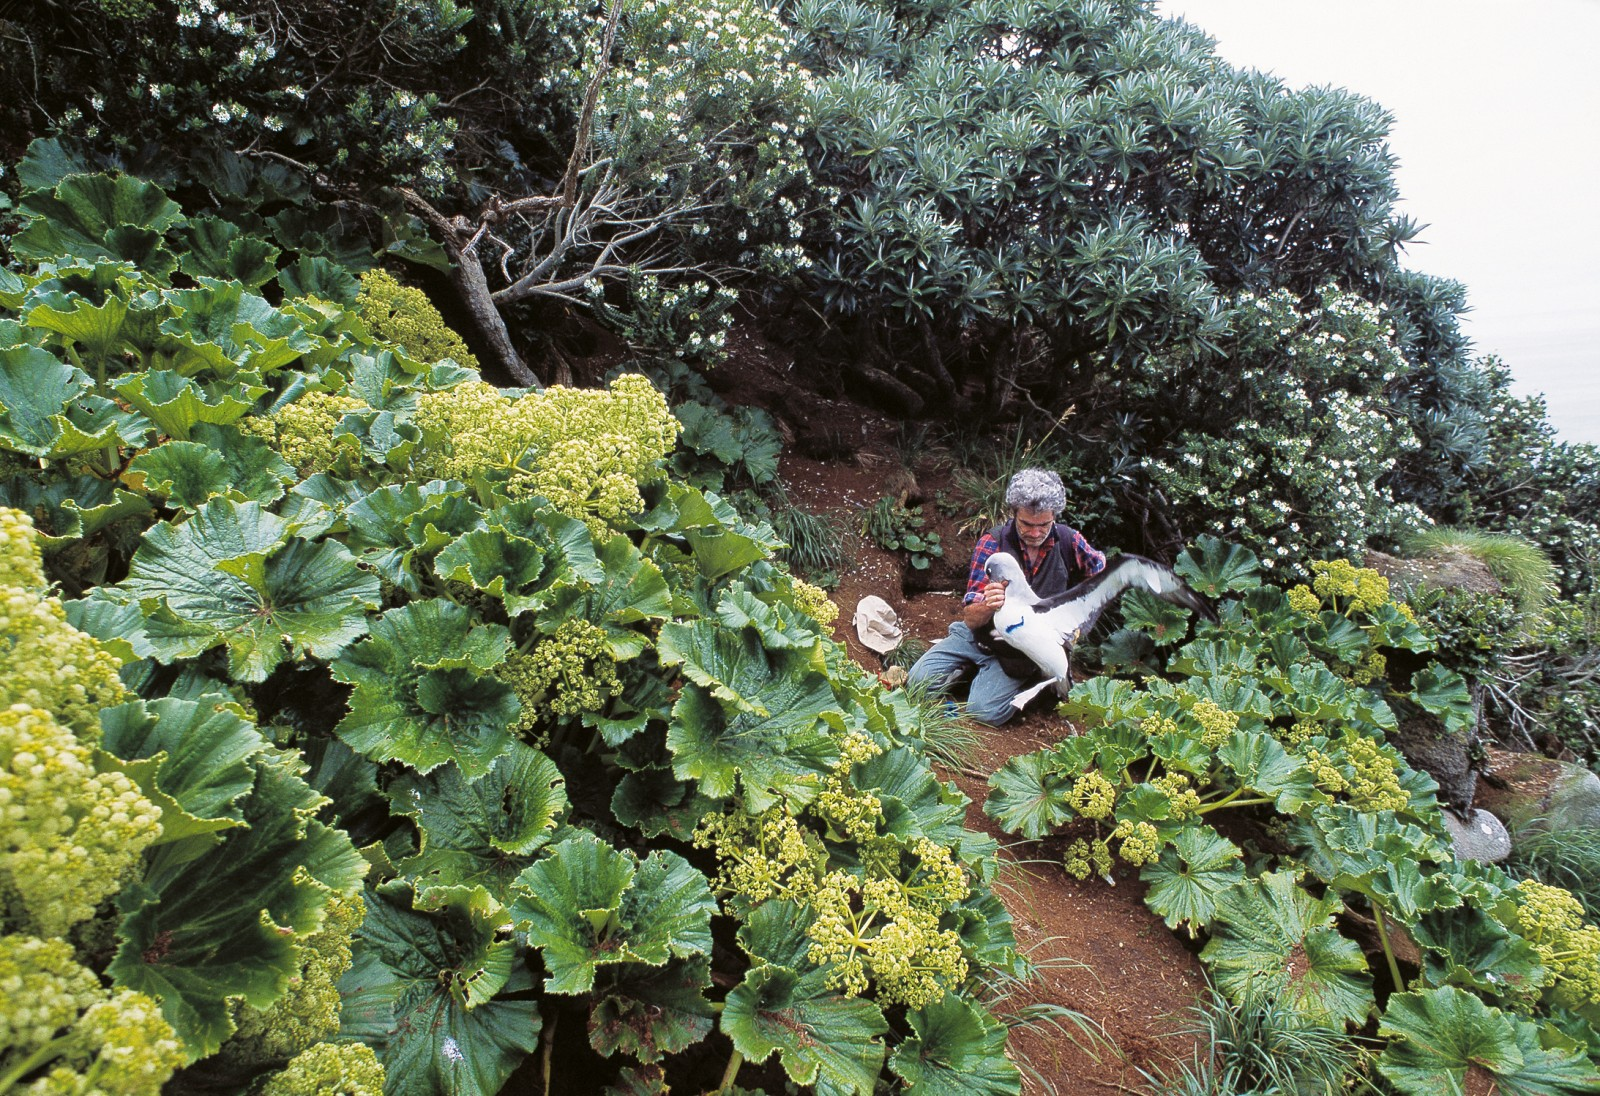 Megaherbs, the flamboyant flowering plants for which New Zealand's southern offshore islands are well known, are represented by just one species on the Snares: the large-leaved punui, Stilbocarpa robusta.